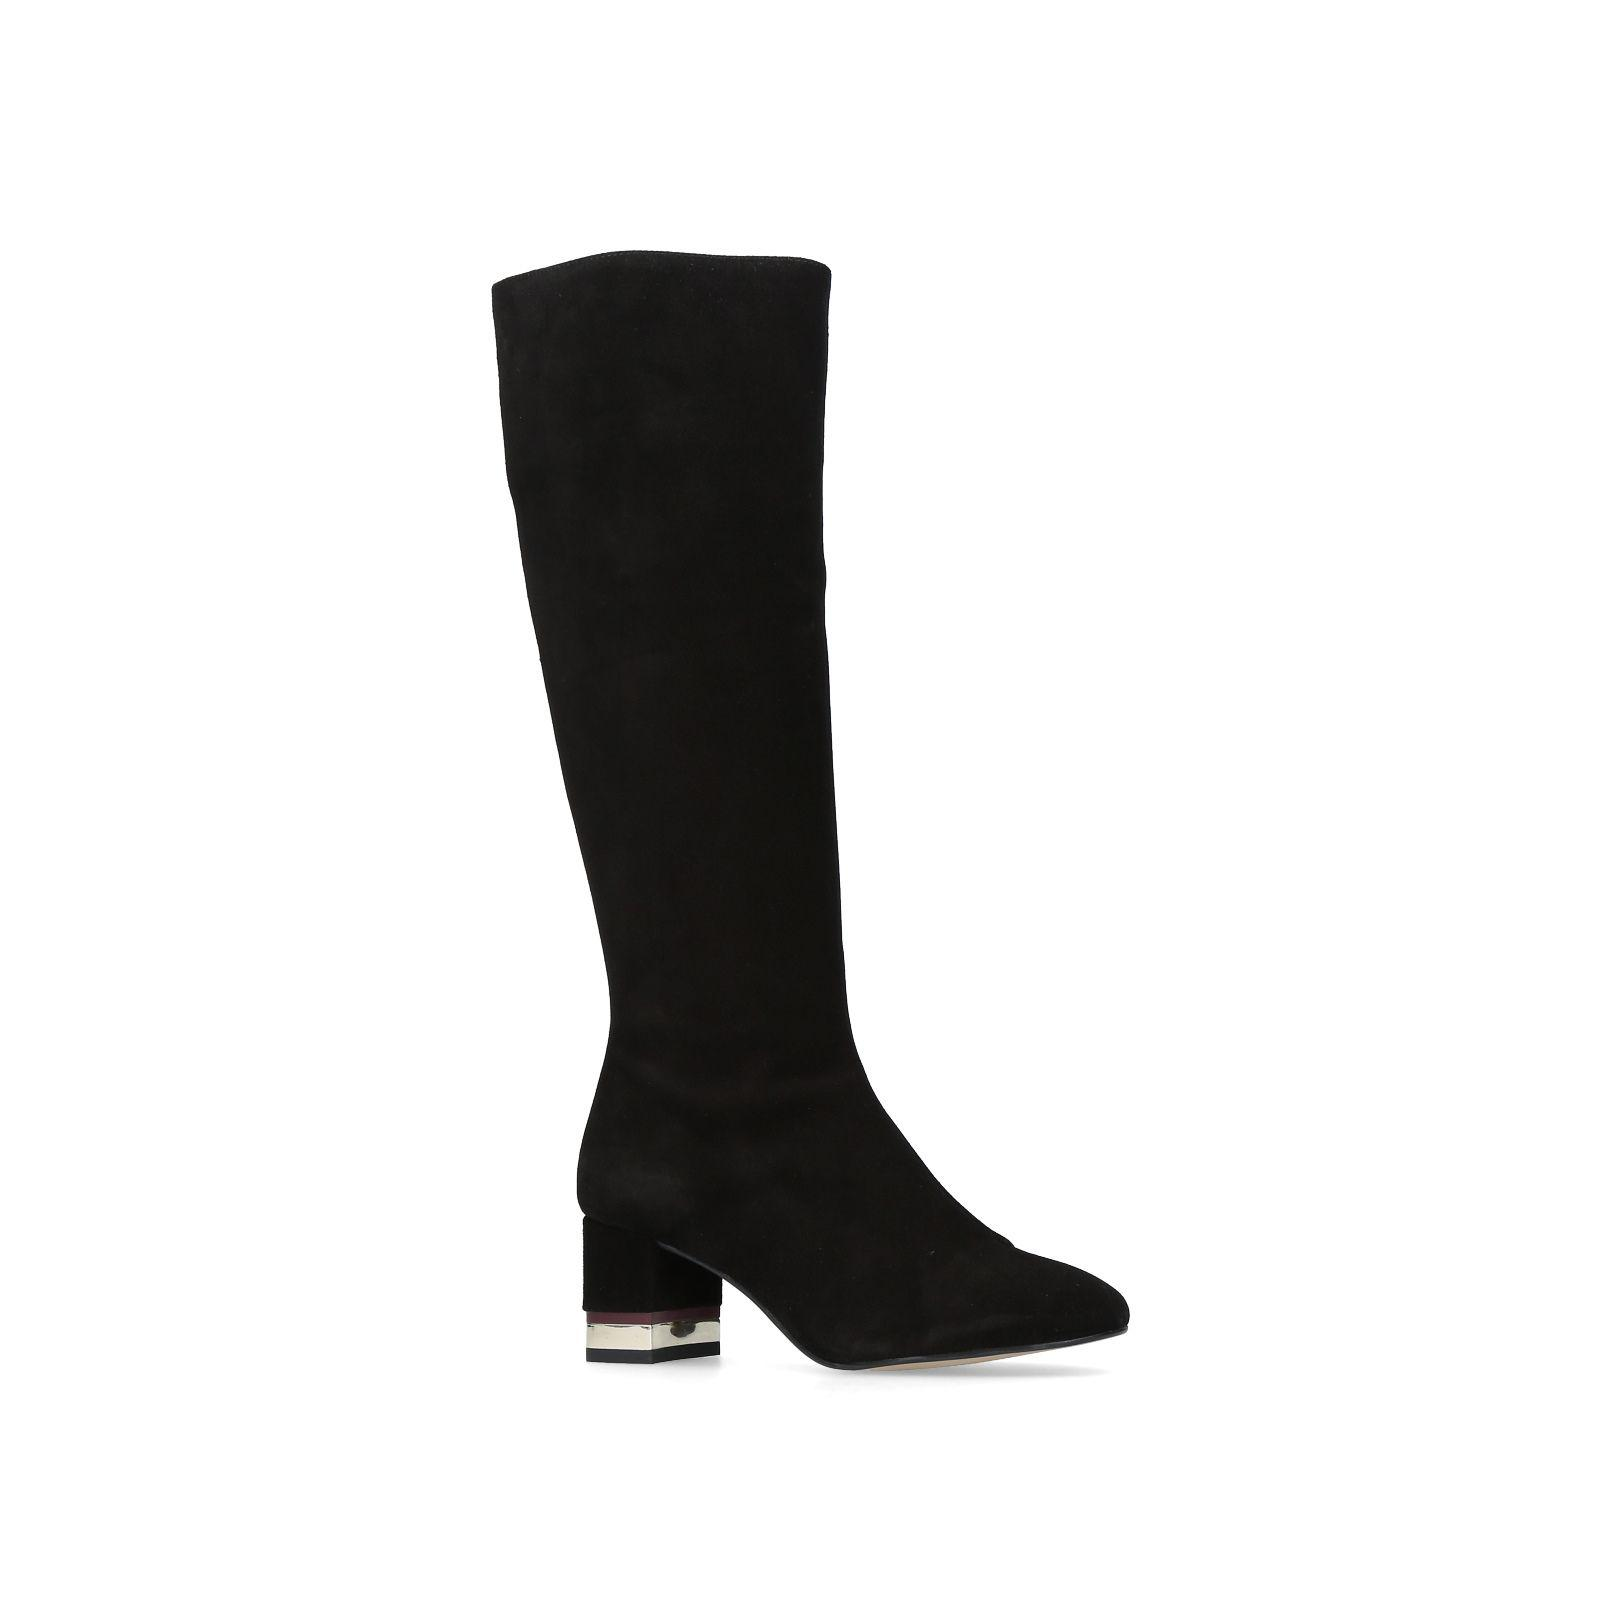 KG by Kurt Geiger. Women's Black Tina Knee High Boots